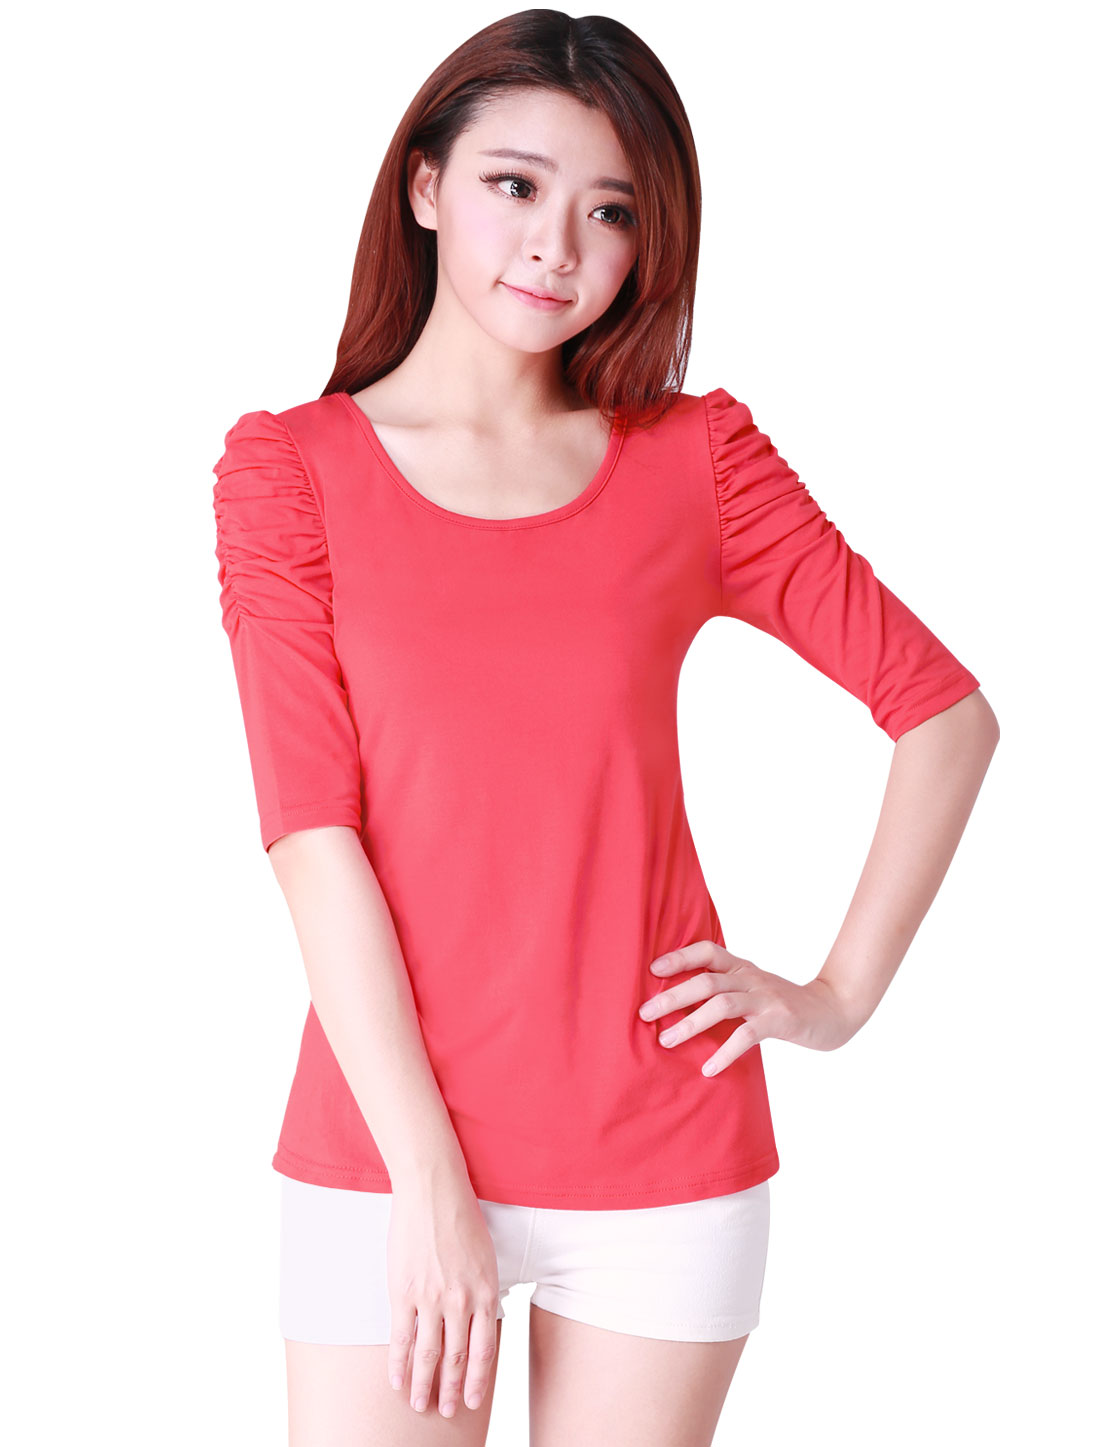 Women Pullover Slim Fit Solid Color Watermelon Red Tee Shirt L